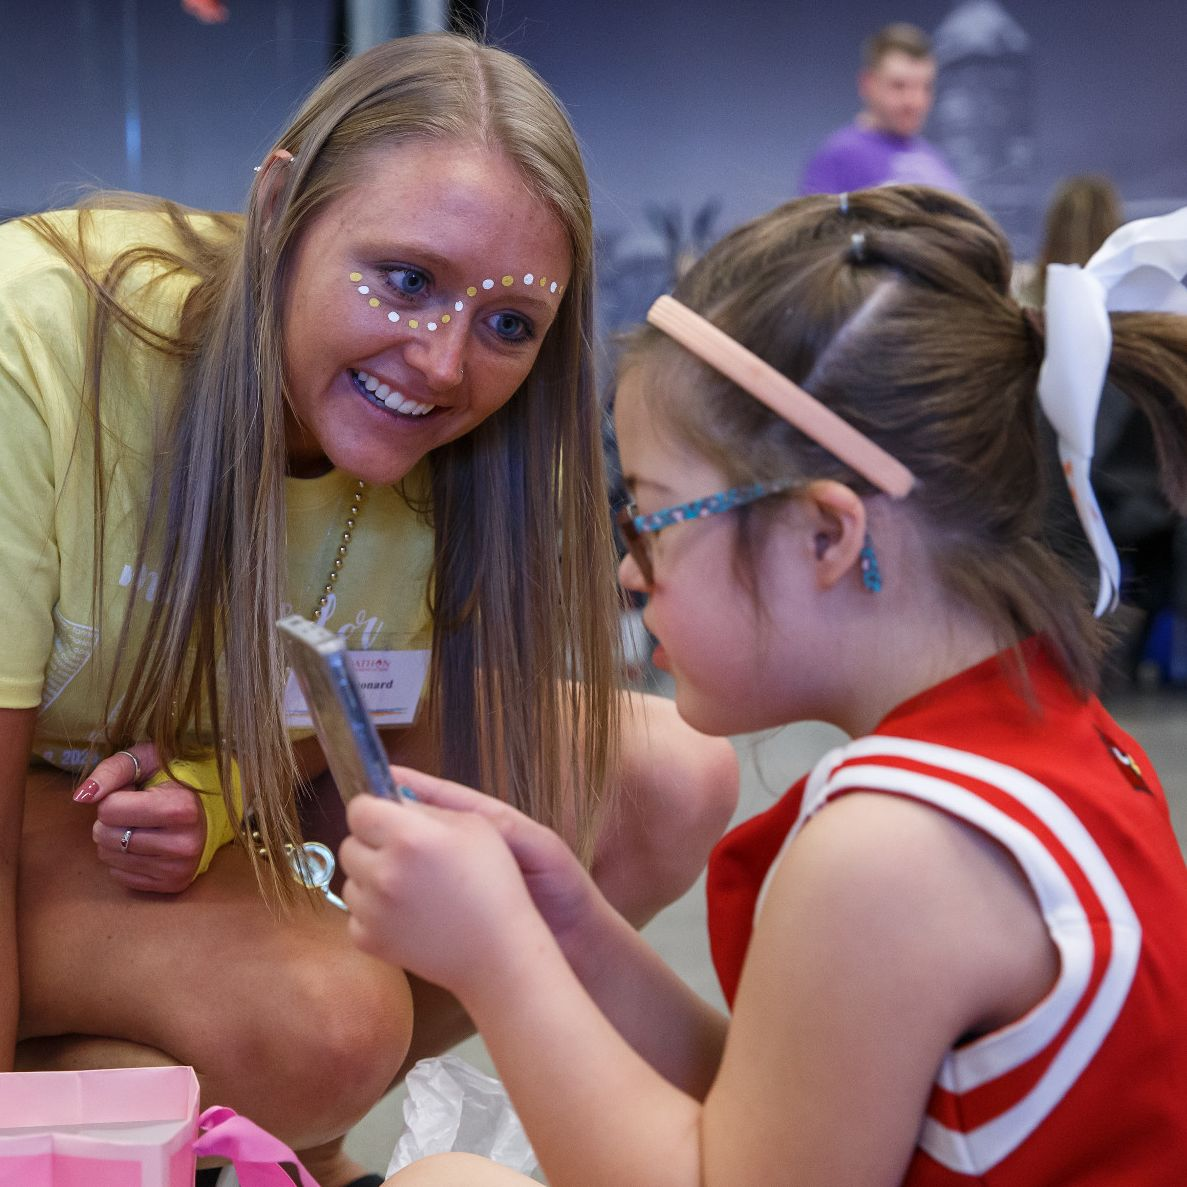 An IUPUI student wearing face paint decorations visits with a child from Riley Hospital for Children